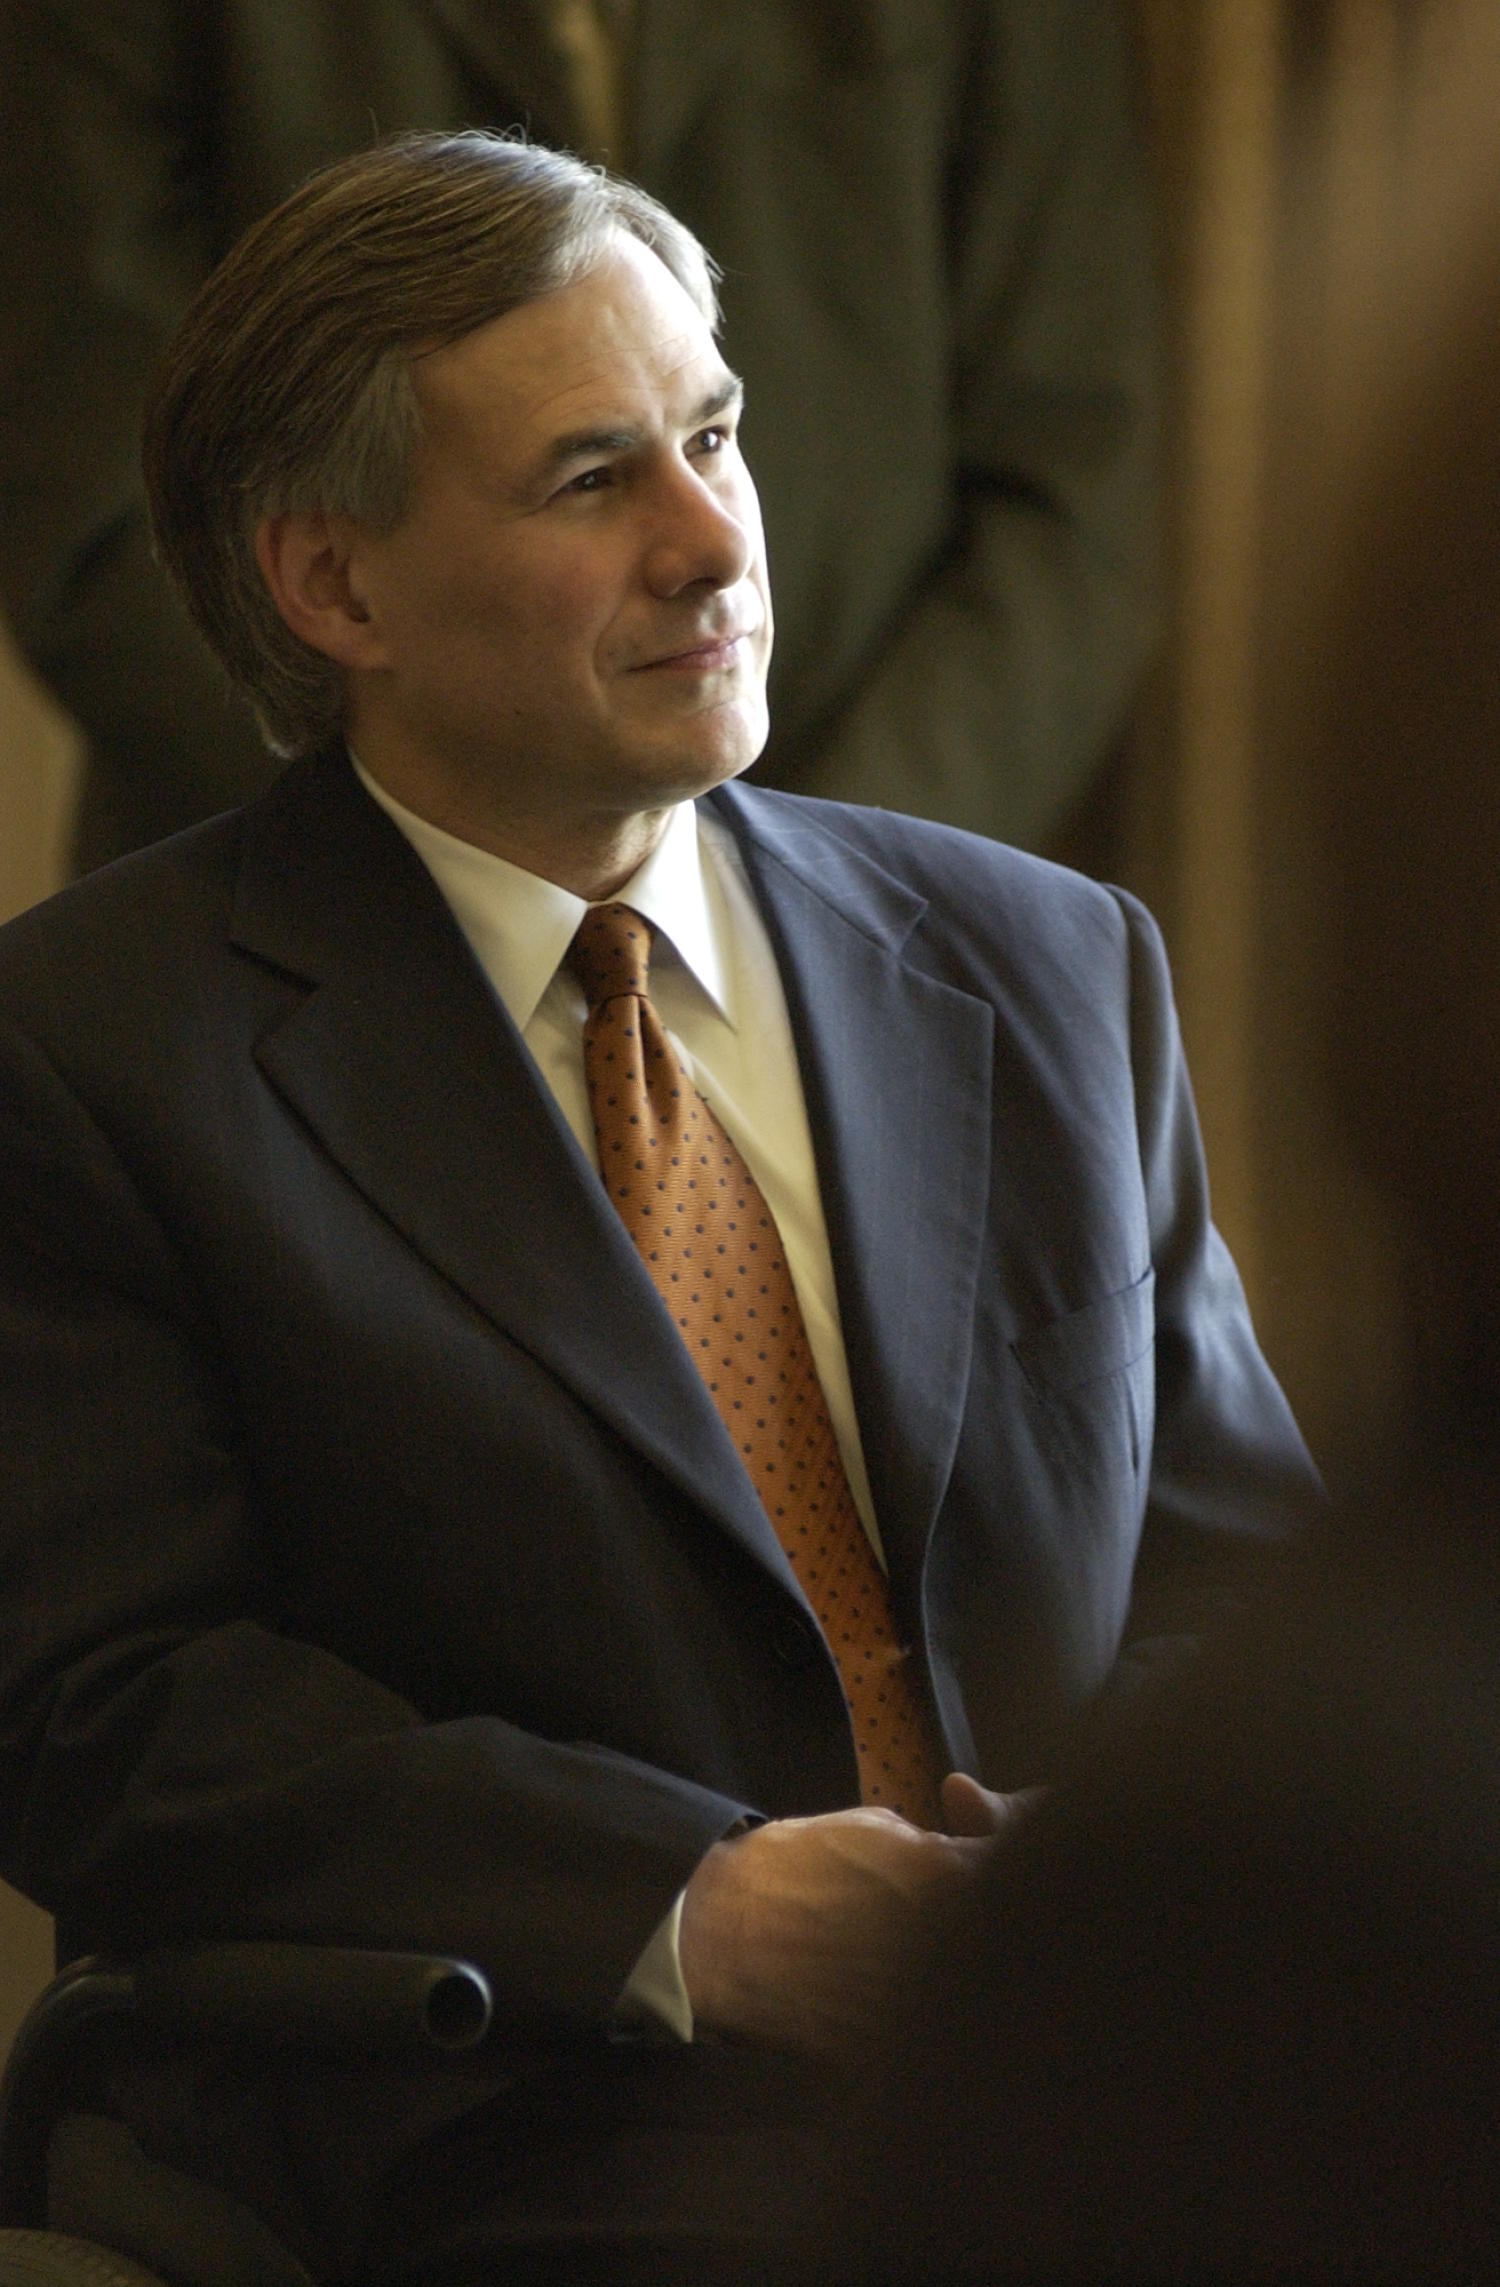 [Greg Abbott attending the TDNA conference], Photograph of Texas Attorney General Greg Abbott seated in a chair and attending the 2004 Texas Daily News Association annual conference held in Corpus Christi. Abbott is looking off to the right at something not visible in the photograph.,